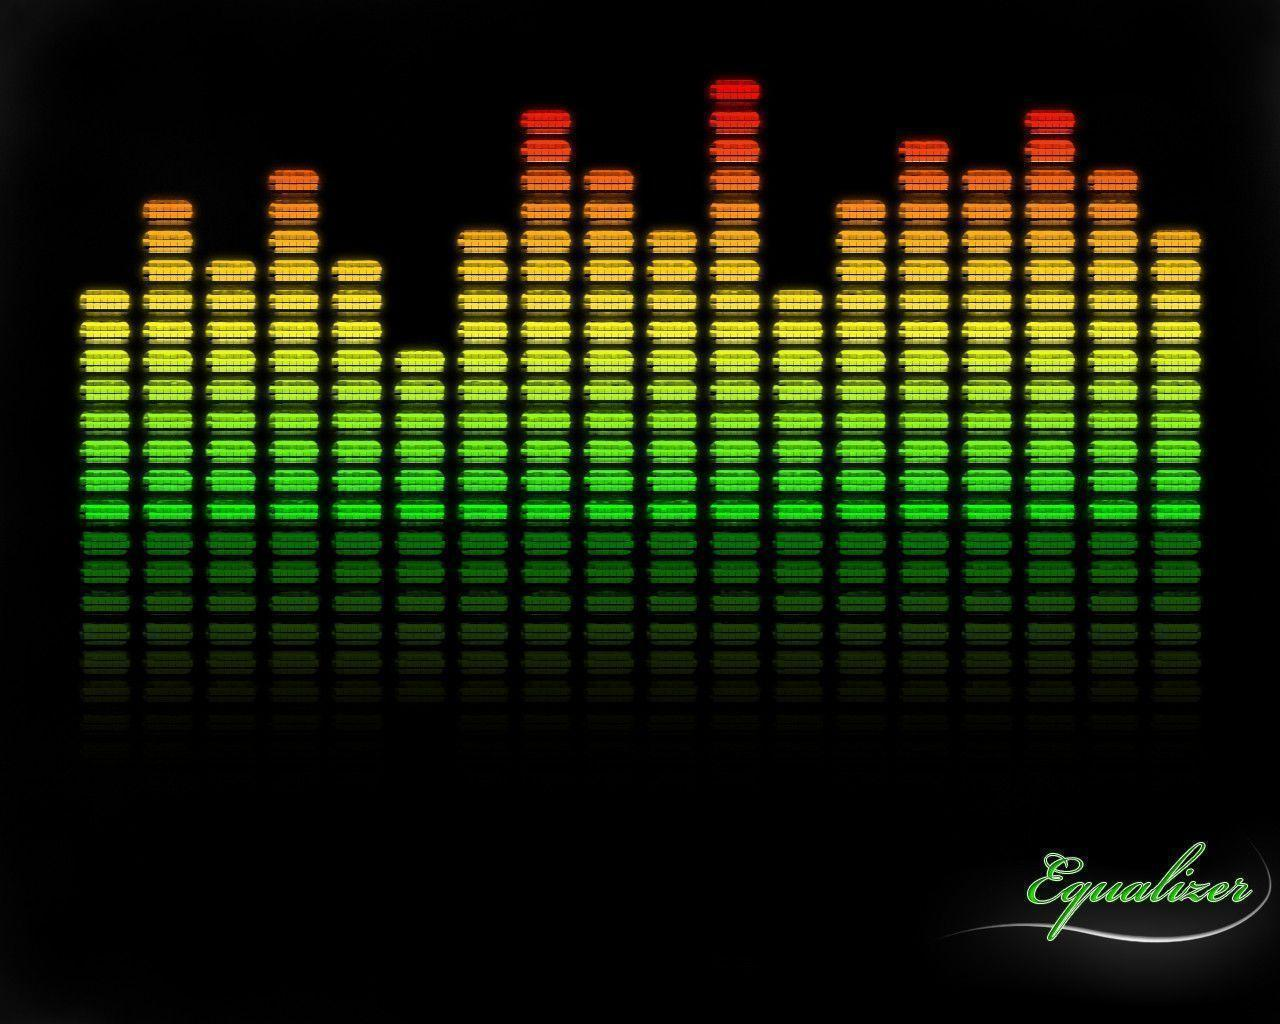 Pin Equalizer Bars Wallpaper 1920x1080 Colorful on Pinterest